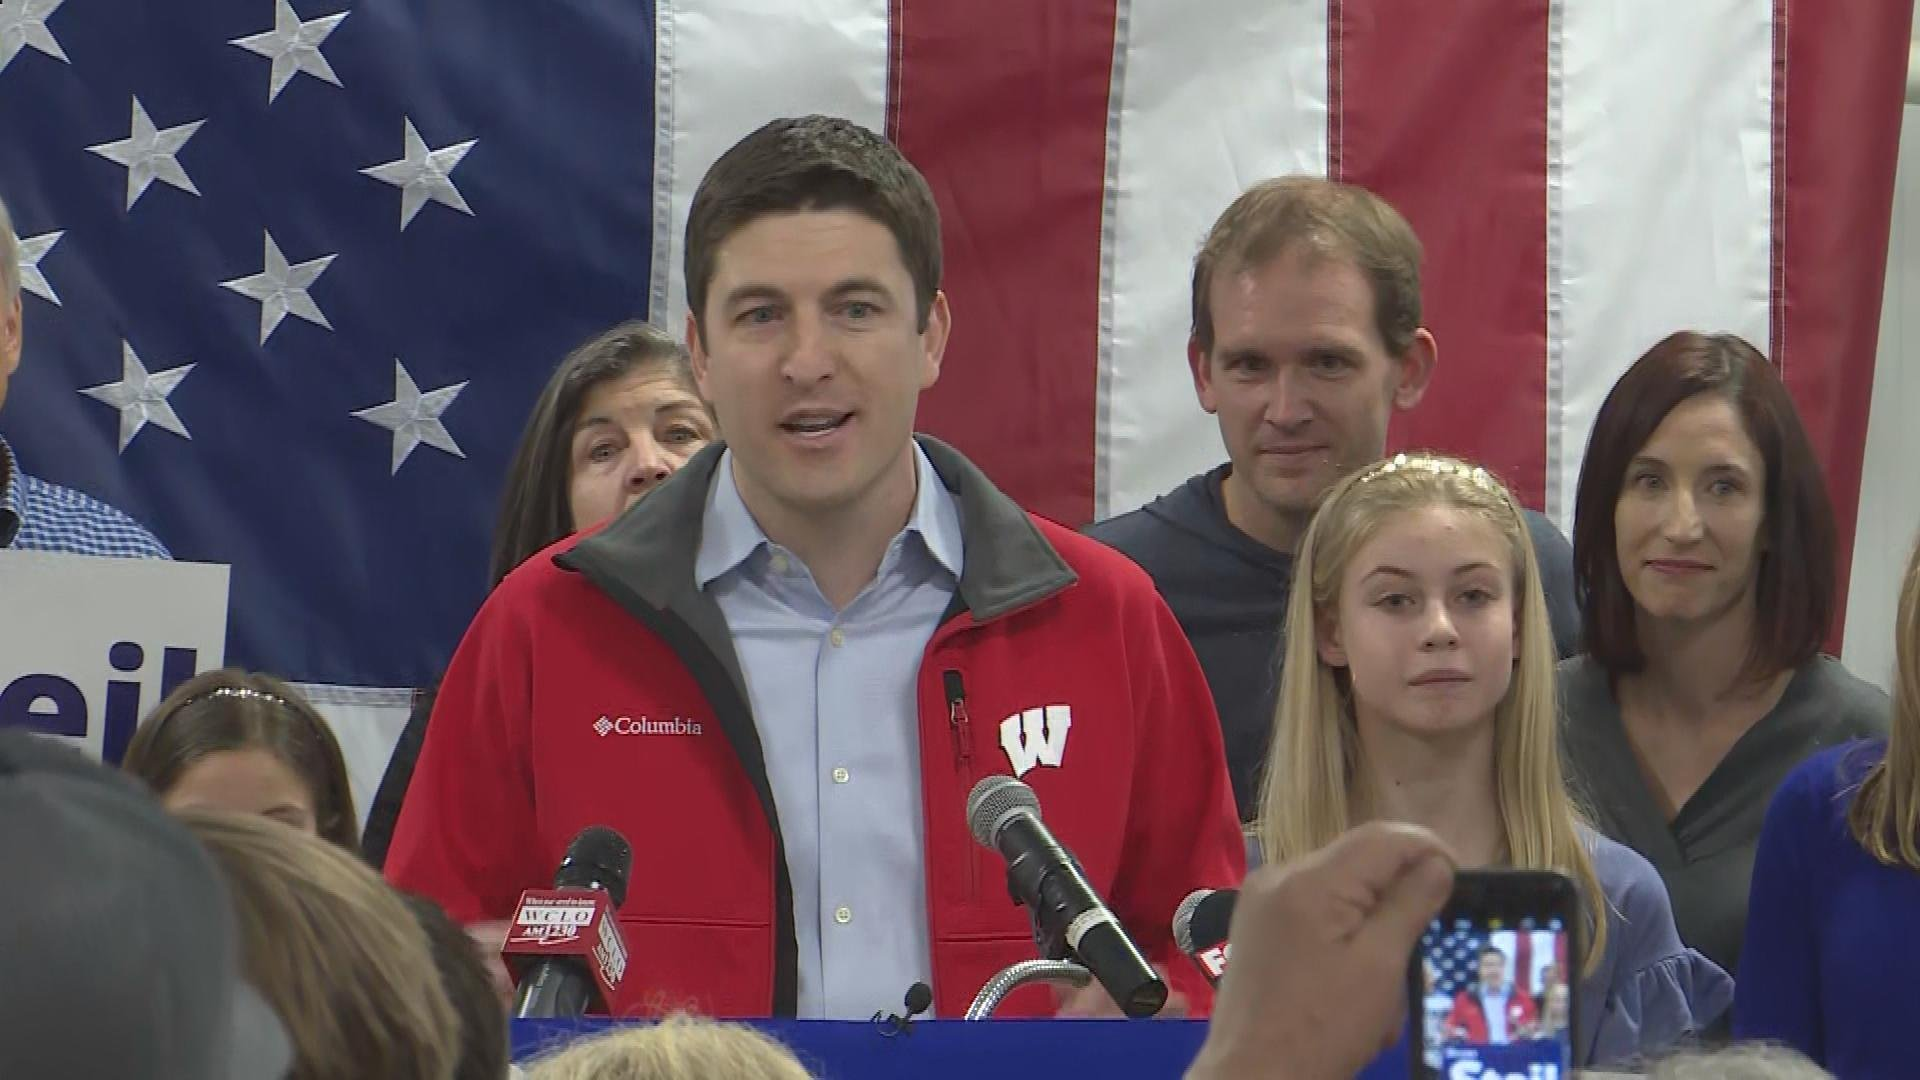 Janesville attorney announces candidacy for Wisconsin's First Congressional District